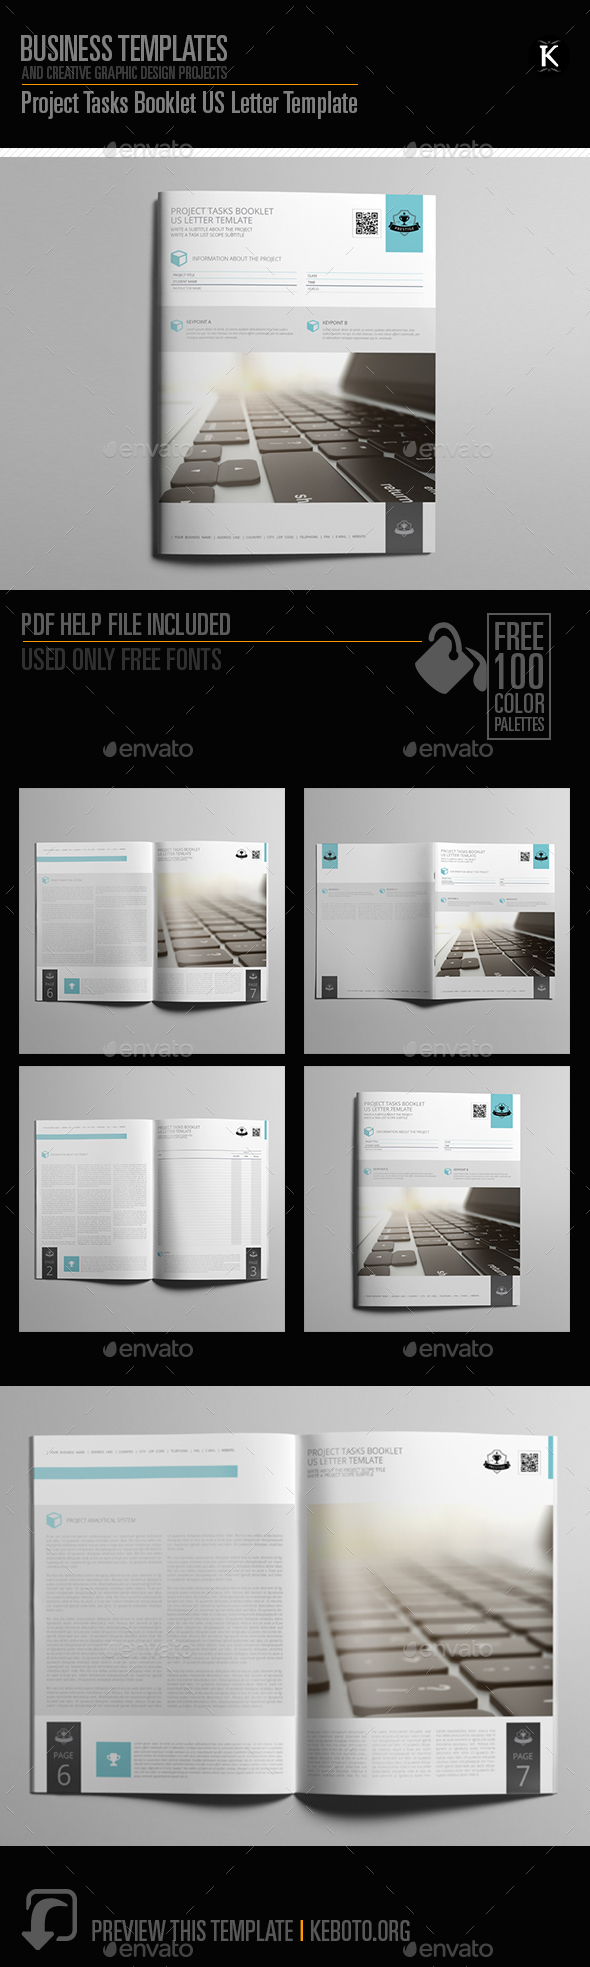 GraphicRiver Project Tasks Booklet US Letter Template 20547249